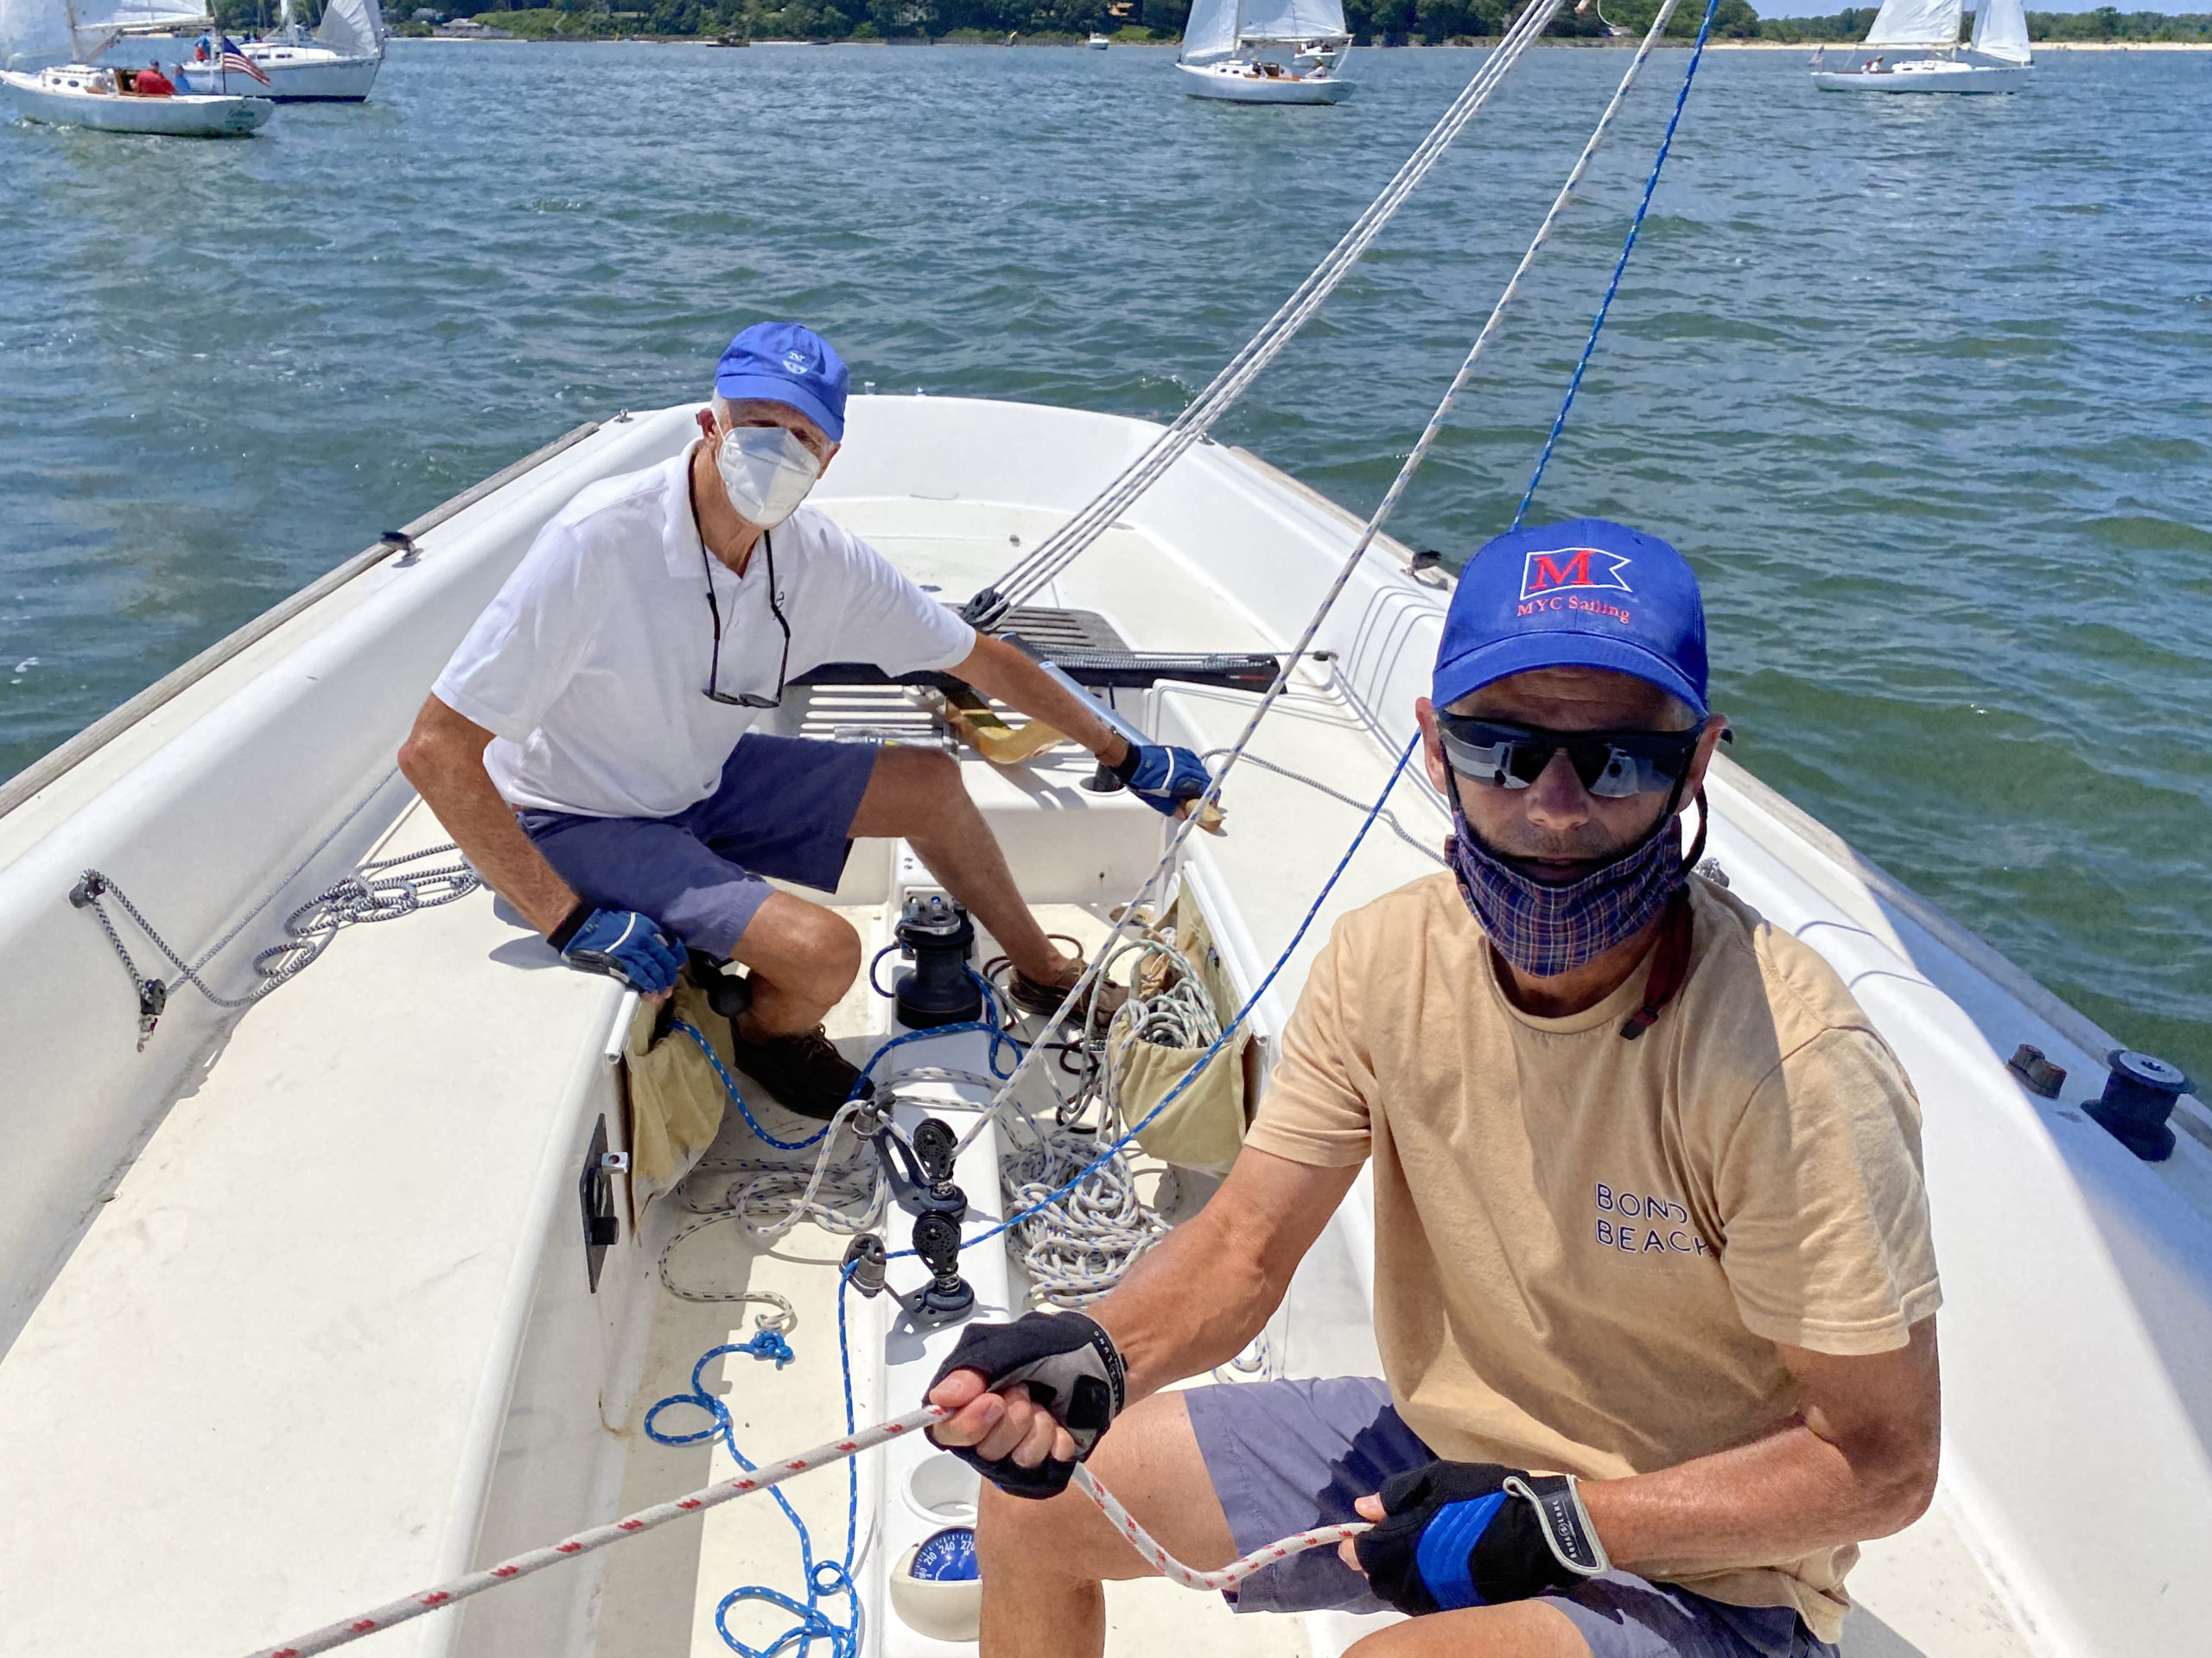 Captain Mark Rickabaugh and jib sheet trimmer Bill Edwards aboard the e-33 yacht, Entropy during the Peconic Bay Sailing Association race on Saturday hosted by the New Suffolk Old Cove Yacht Club.     MICHAEL MELLA